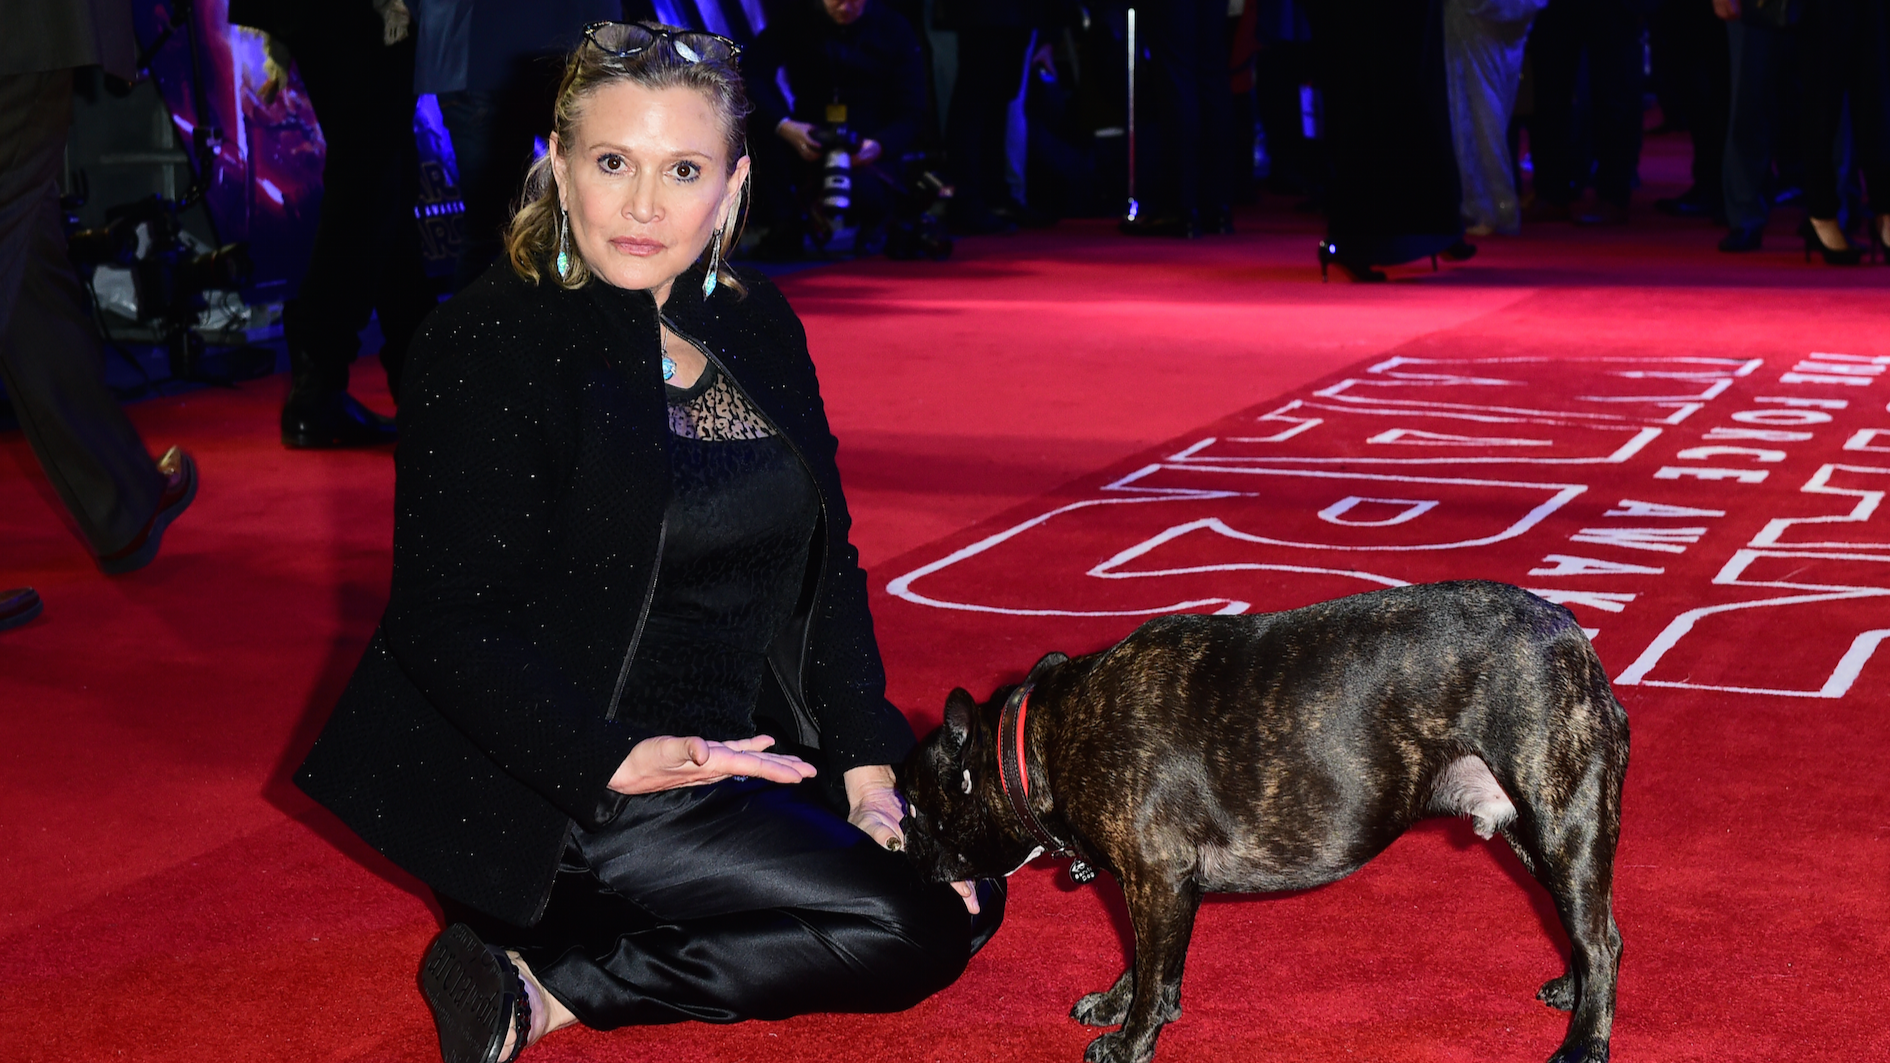 Carrie Fisher's Dog Gary Attended A Screening Of 'The Last Jedi' And Loved Seeing His Late Owner On Screen